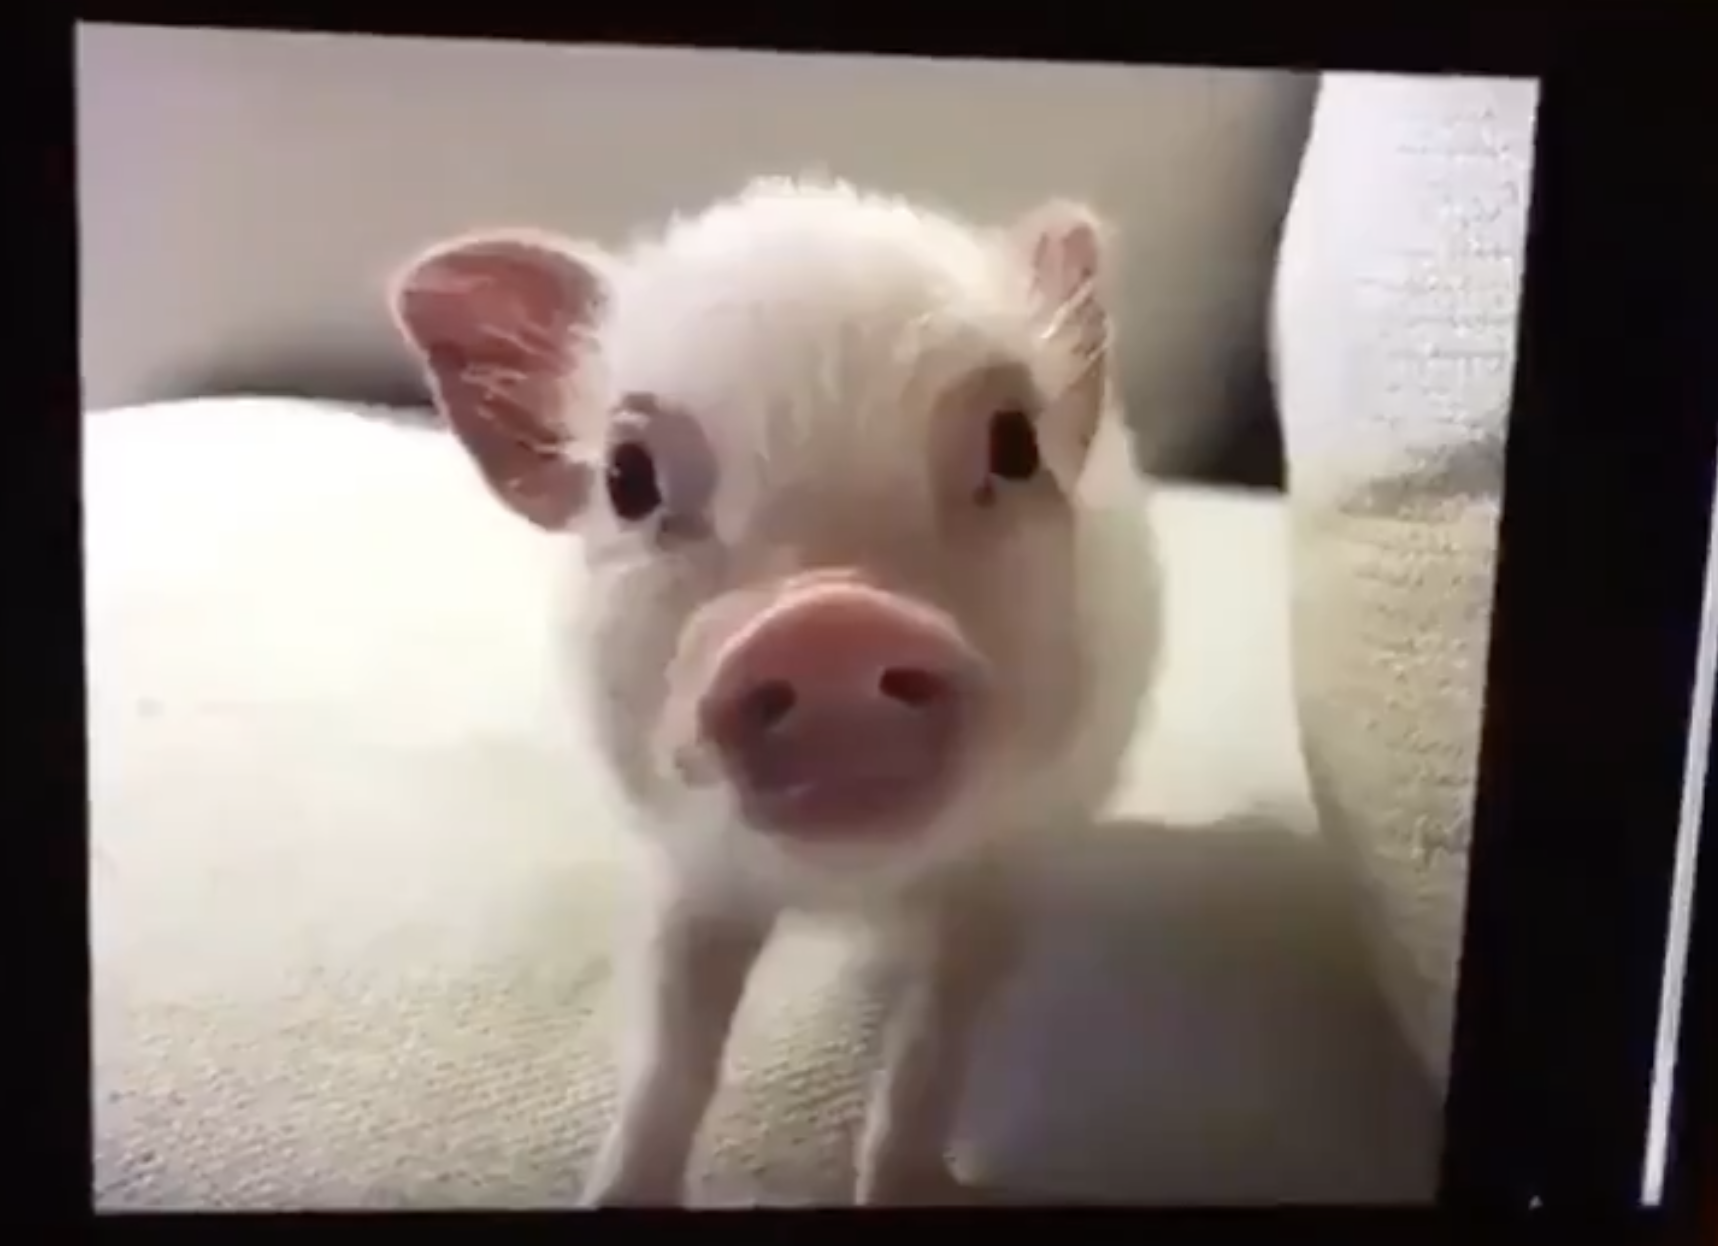 A tiny pig looking into the camera